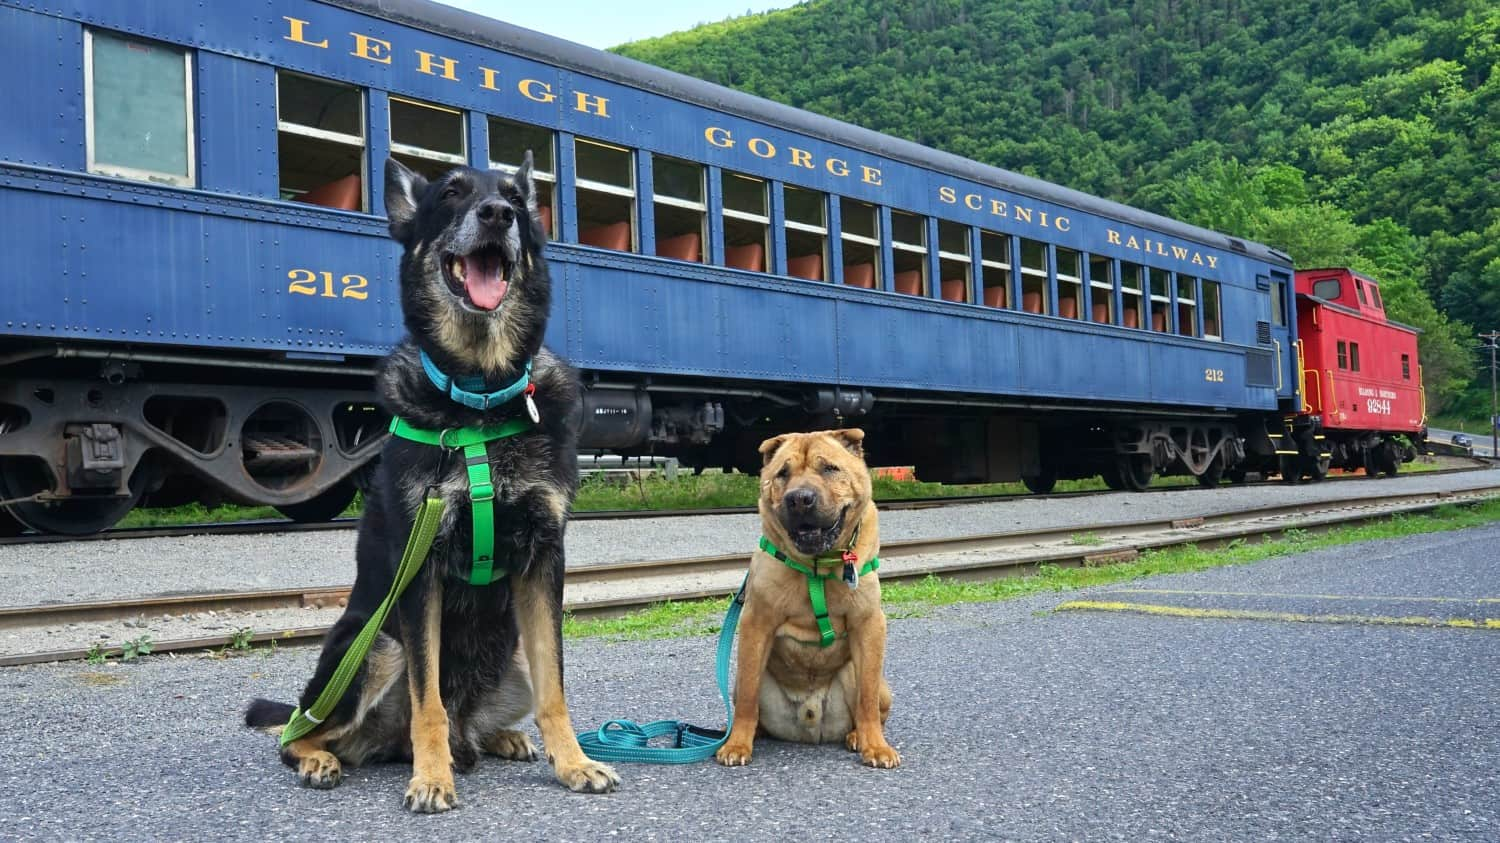 Pennsylvania's Top Pet Friendly Attraction: Lehigh Gorge Scenic Railway | GoPetFriendly.com